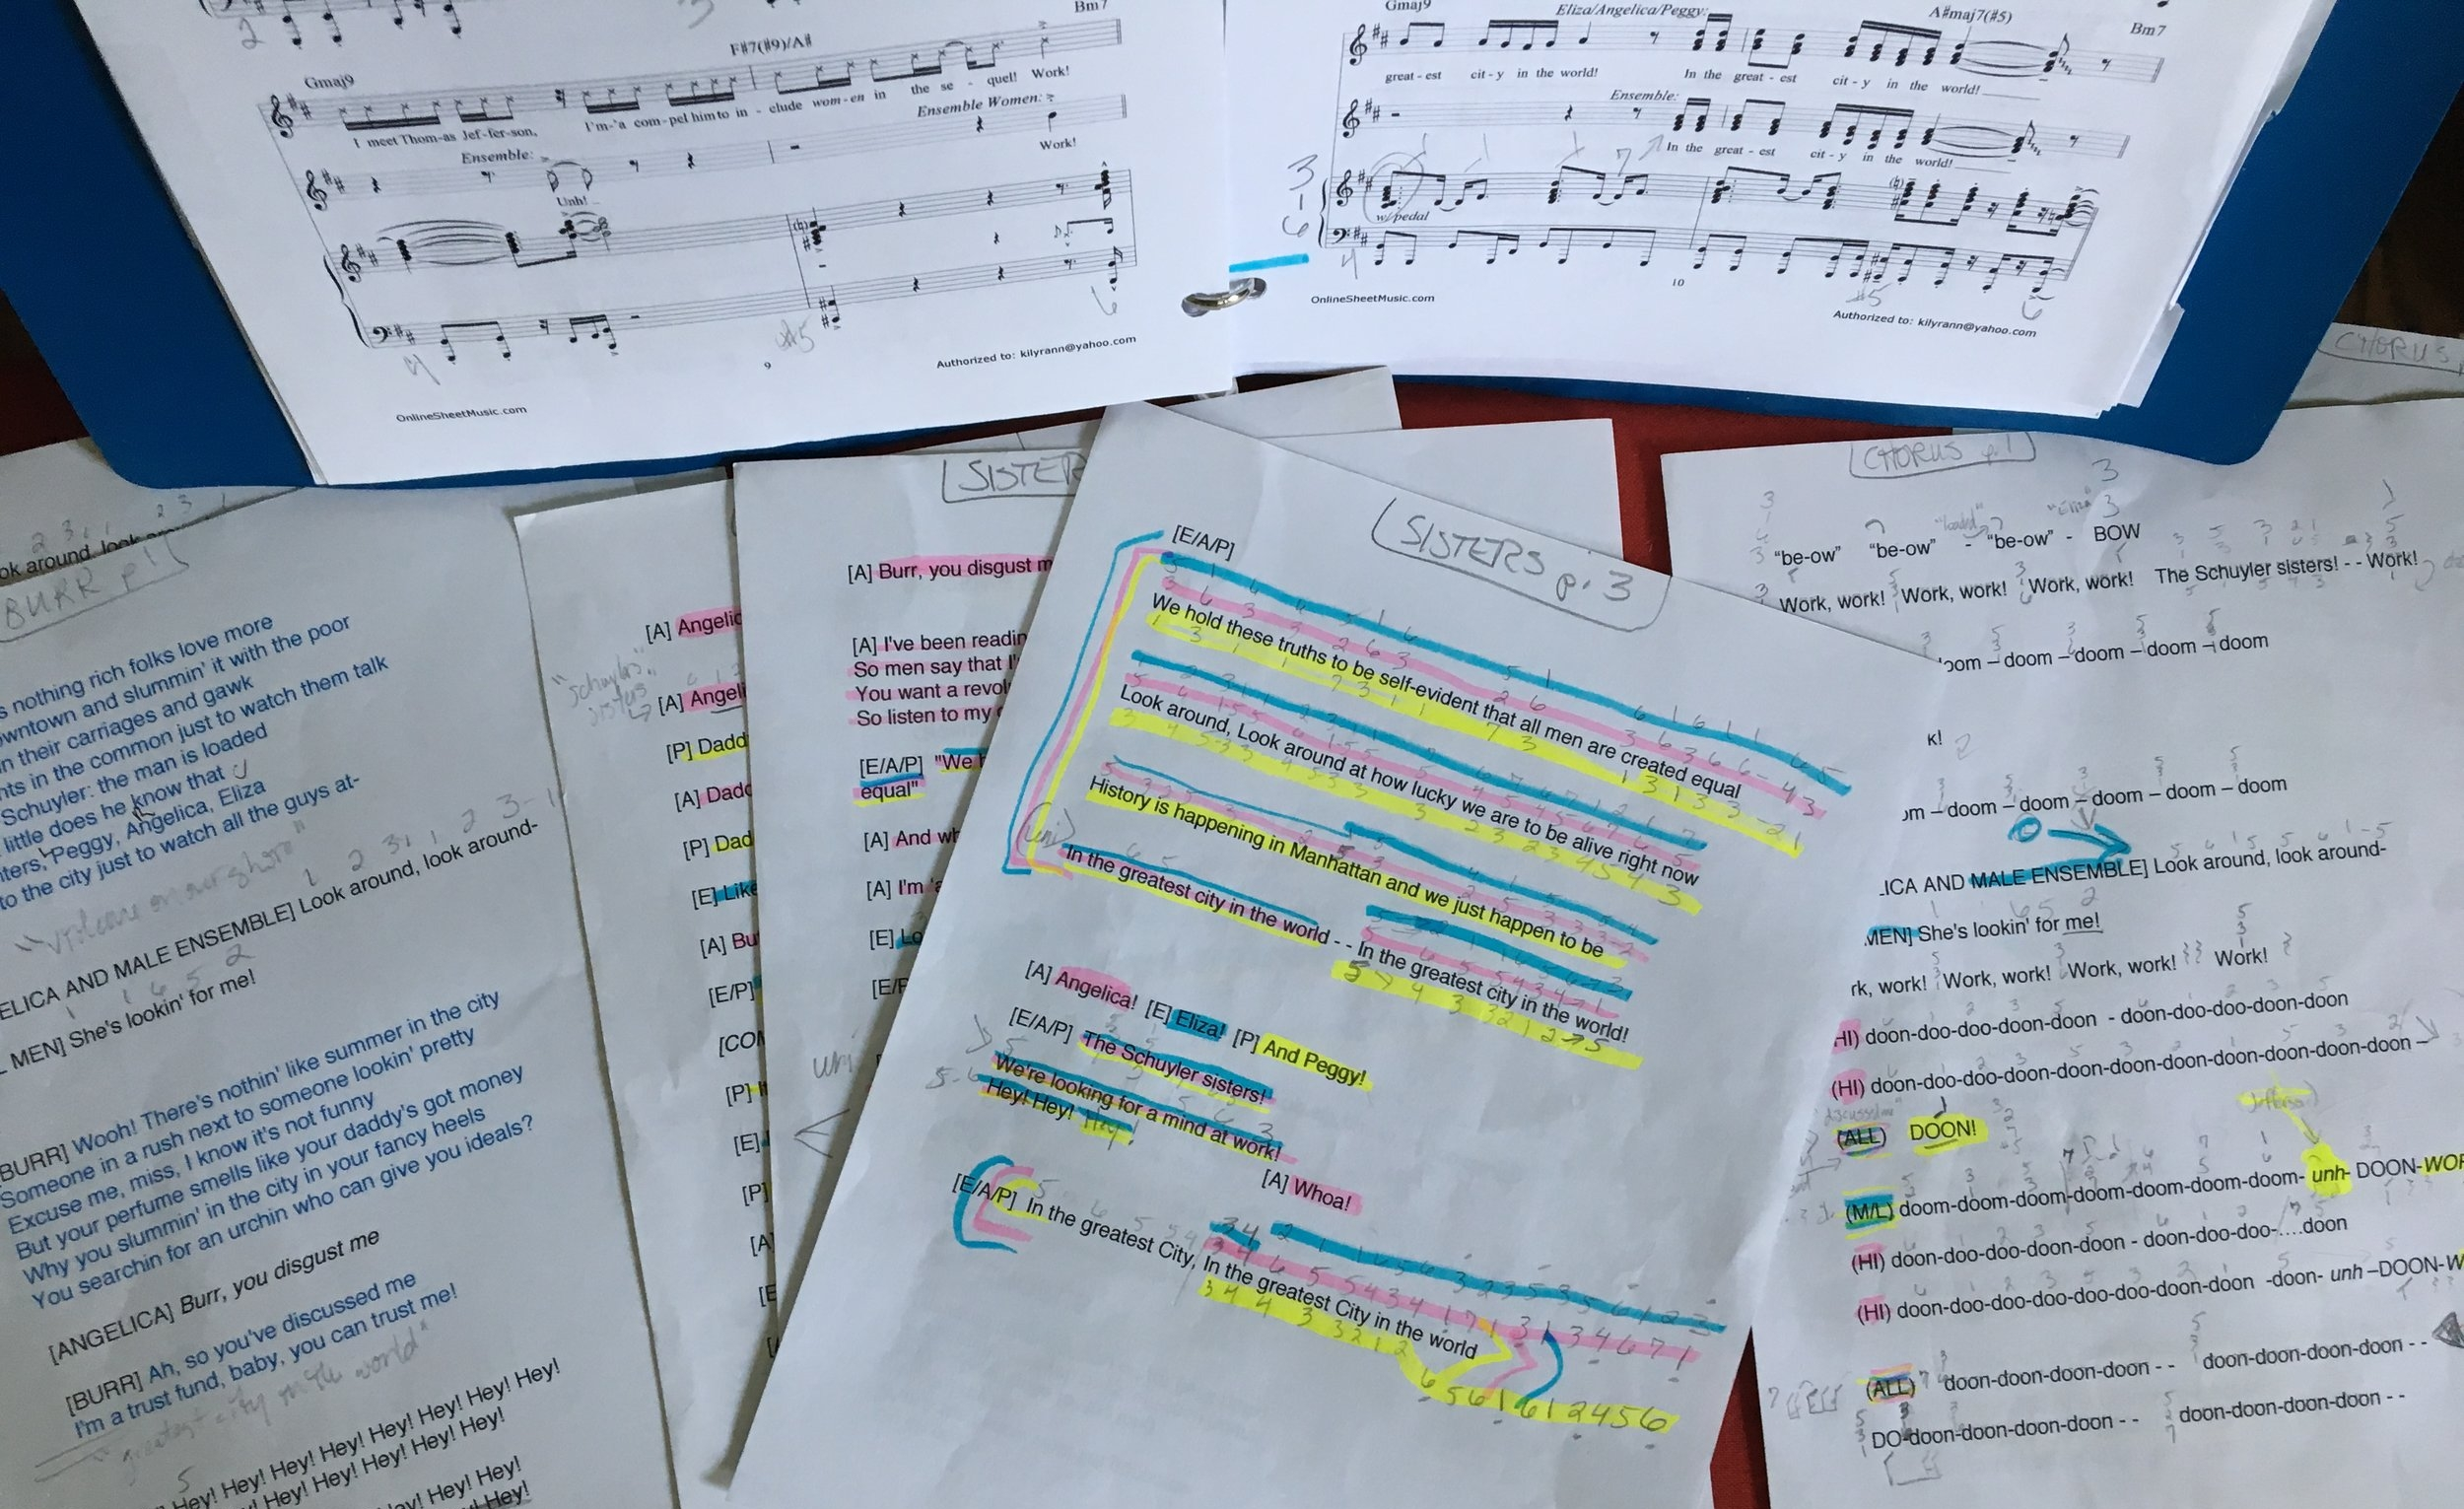 7 pages of my charts + 14-page score. #workwork